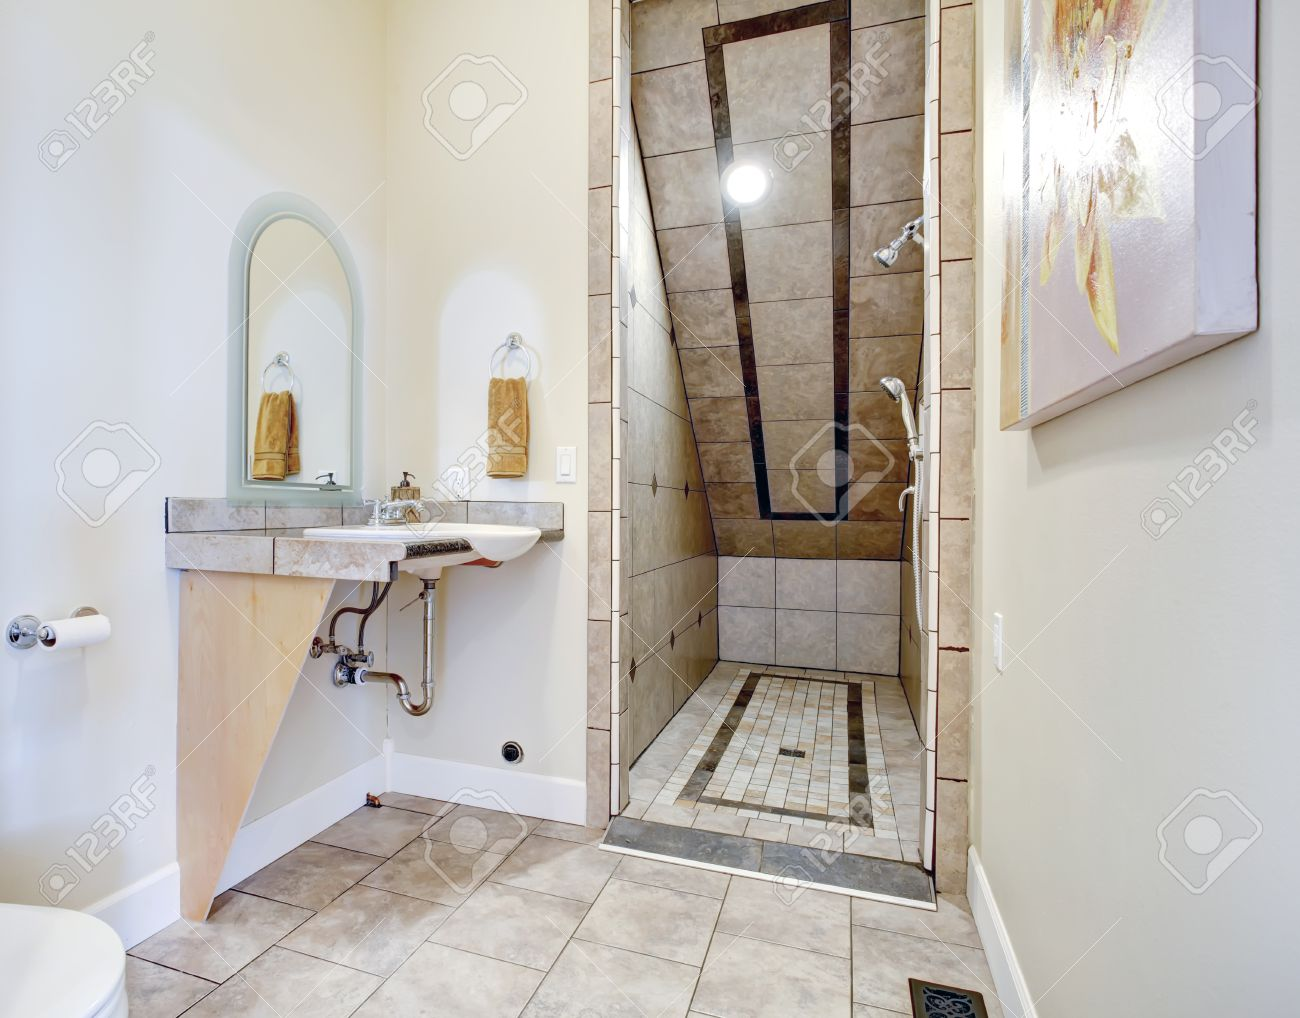 Best Kitchen Gallery: Small Bathroom With Vaulted Ceiling Open Shower Area Tile Trim of Open Showers For Small Bathrooms on rachelxblog.com